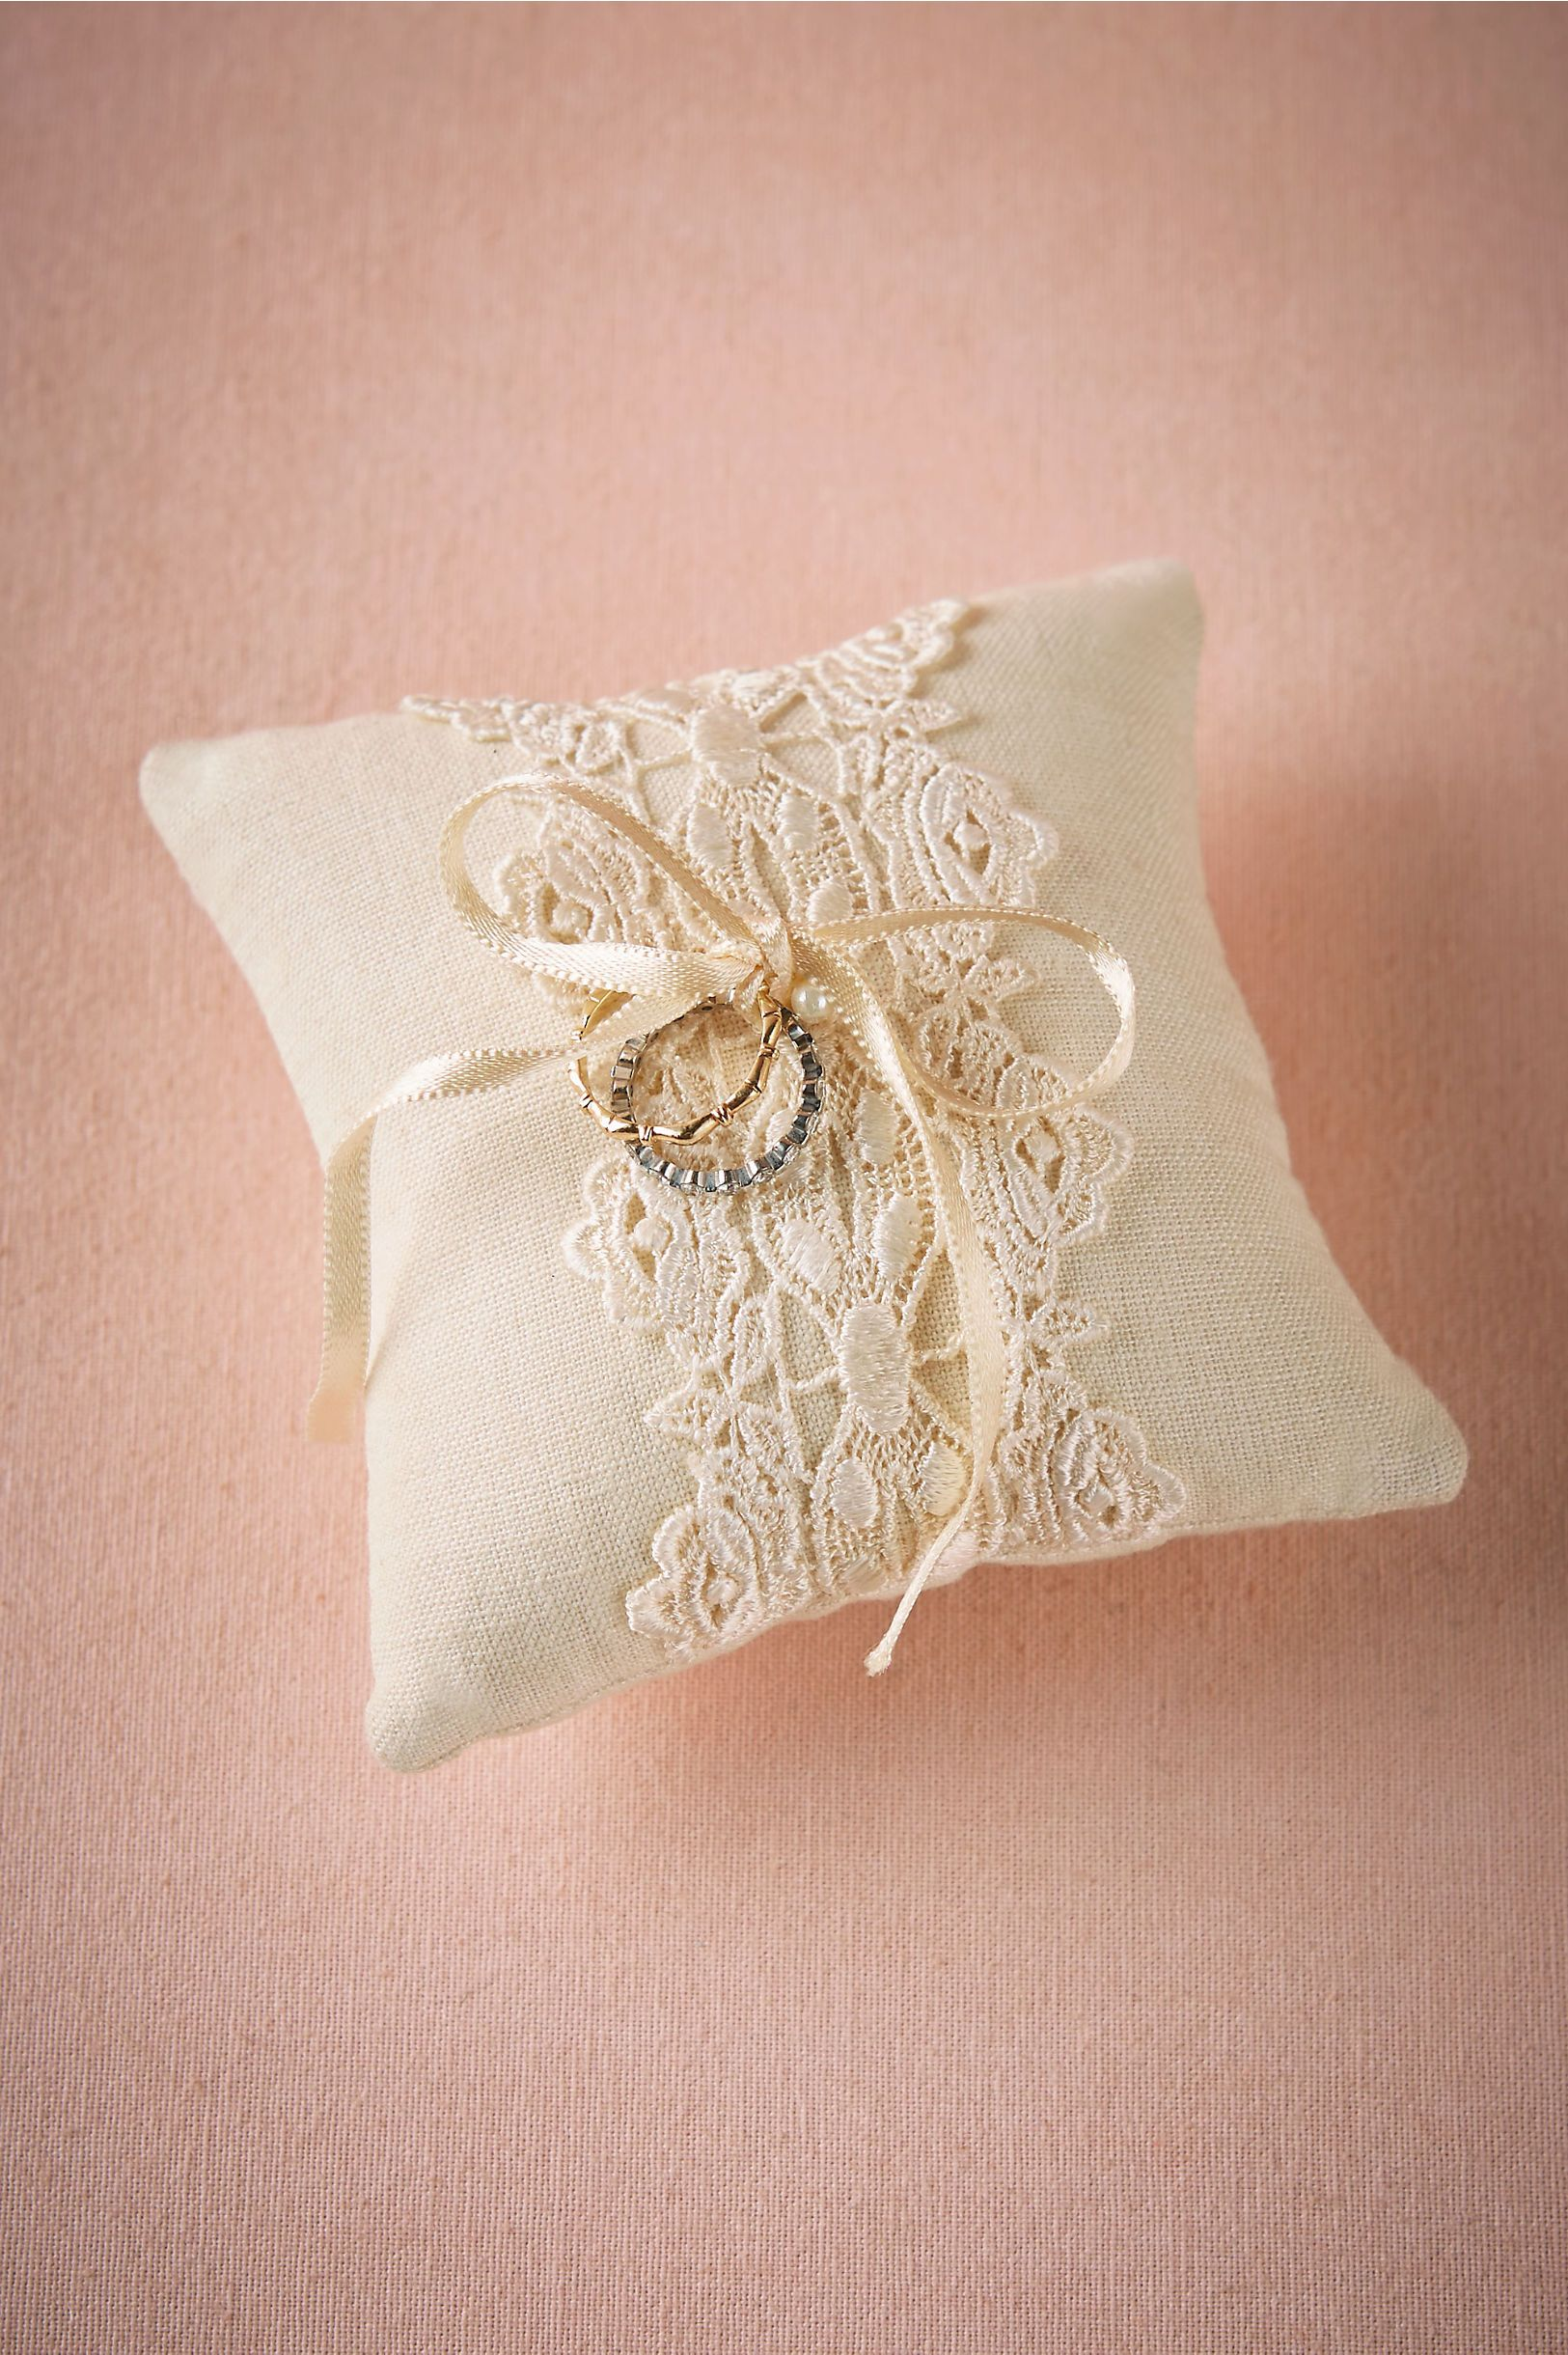 wedding products dog ring to collar pink gold pillow and attach bearer